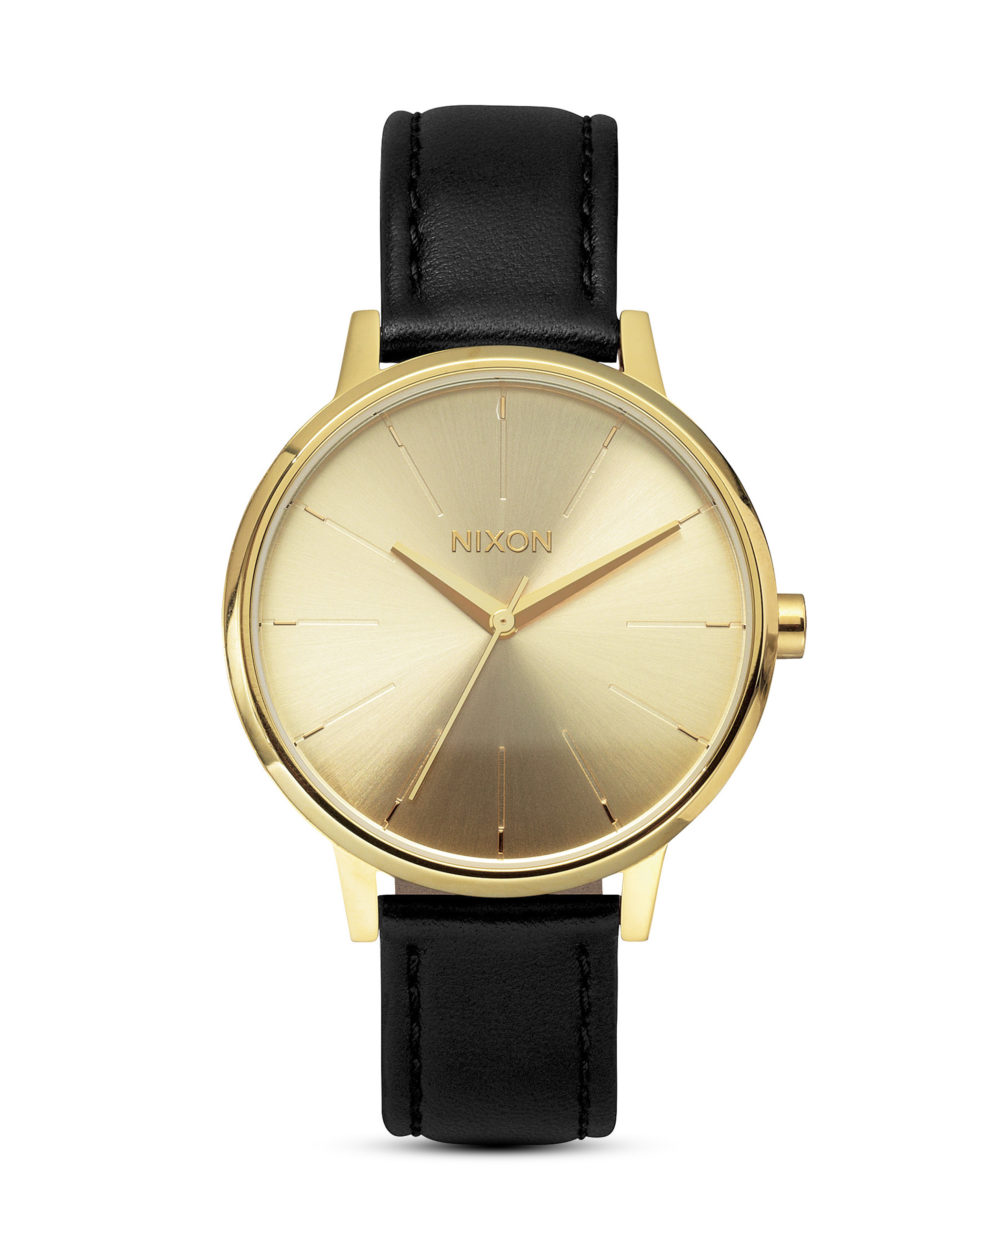 NIXON, Quarzuhr Kensington Leather A108 501 00 Gold